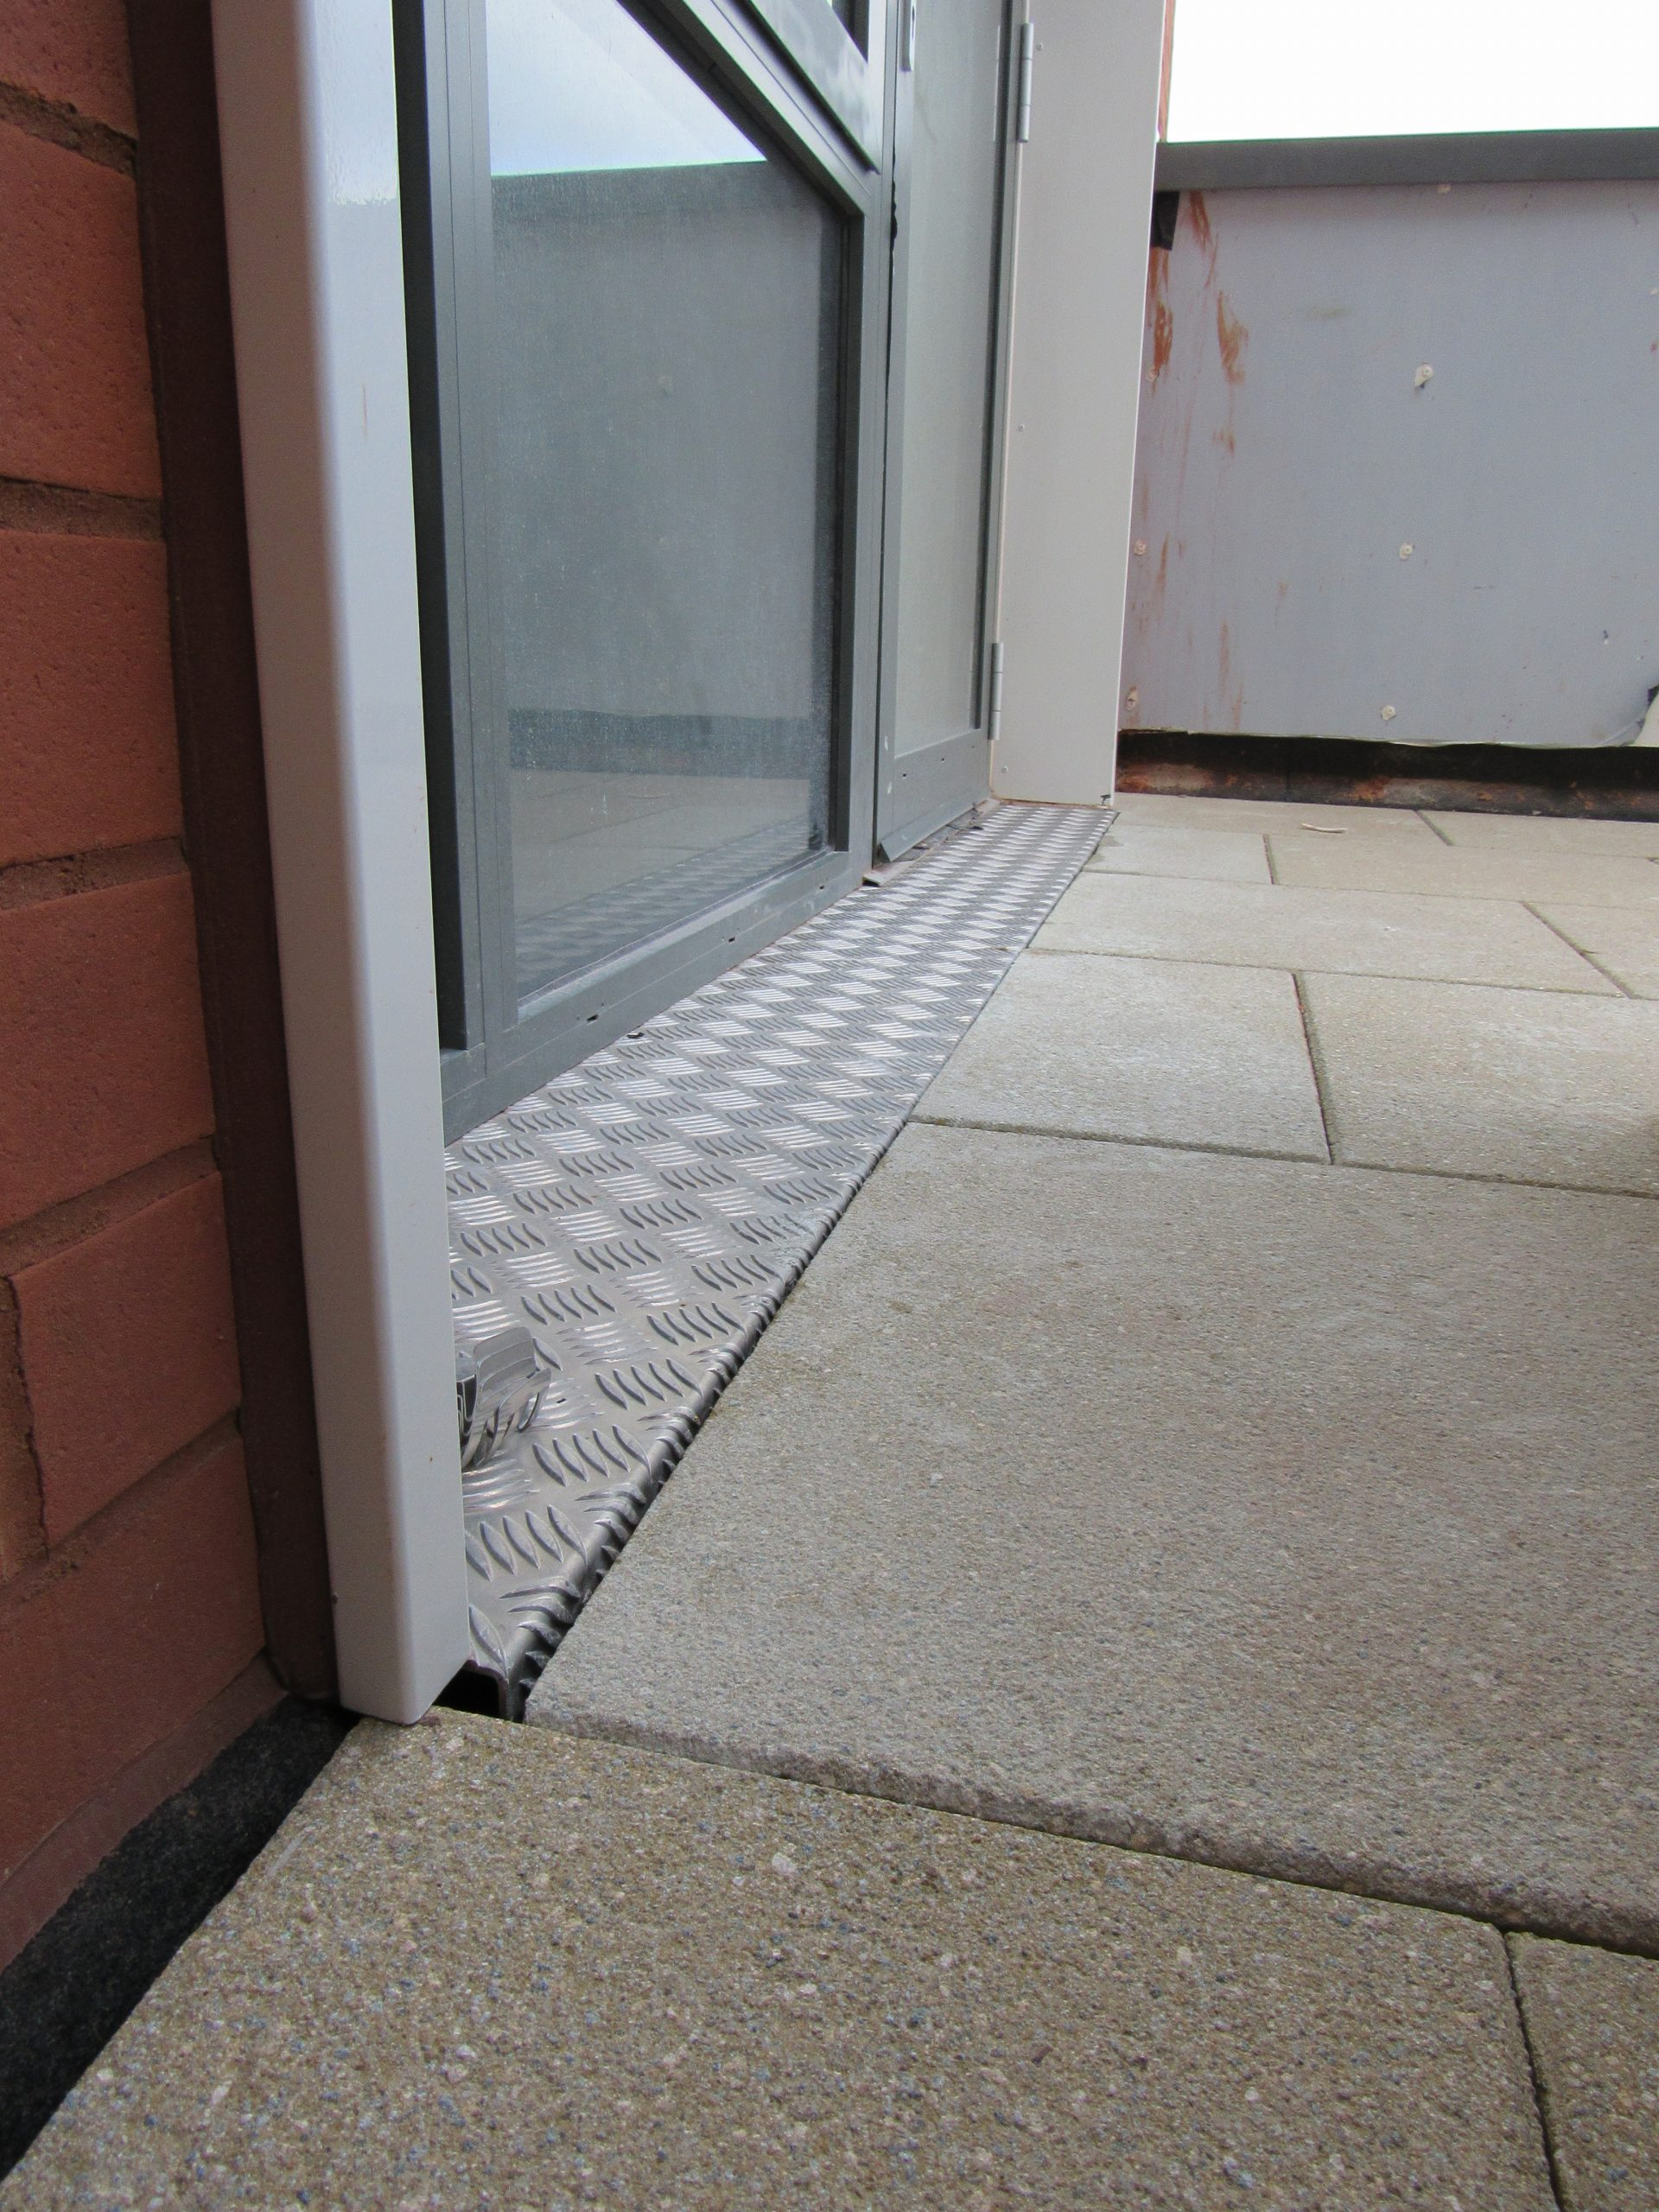 Universal pedestals for paving and decking - paved terrace up to door threshold 4